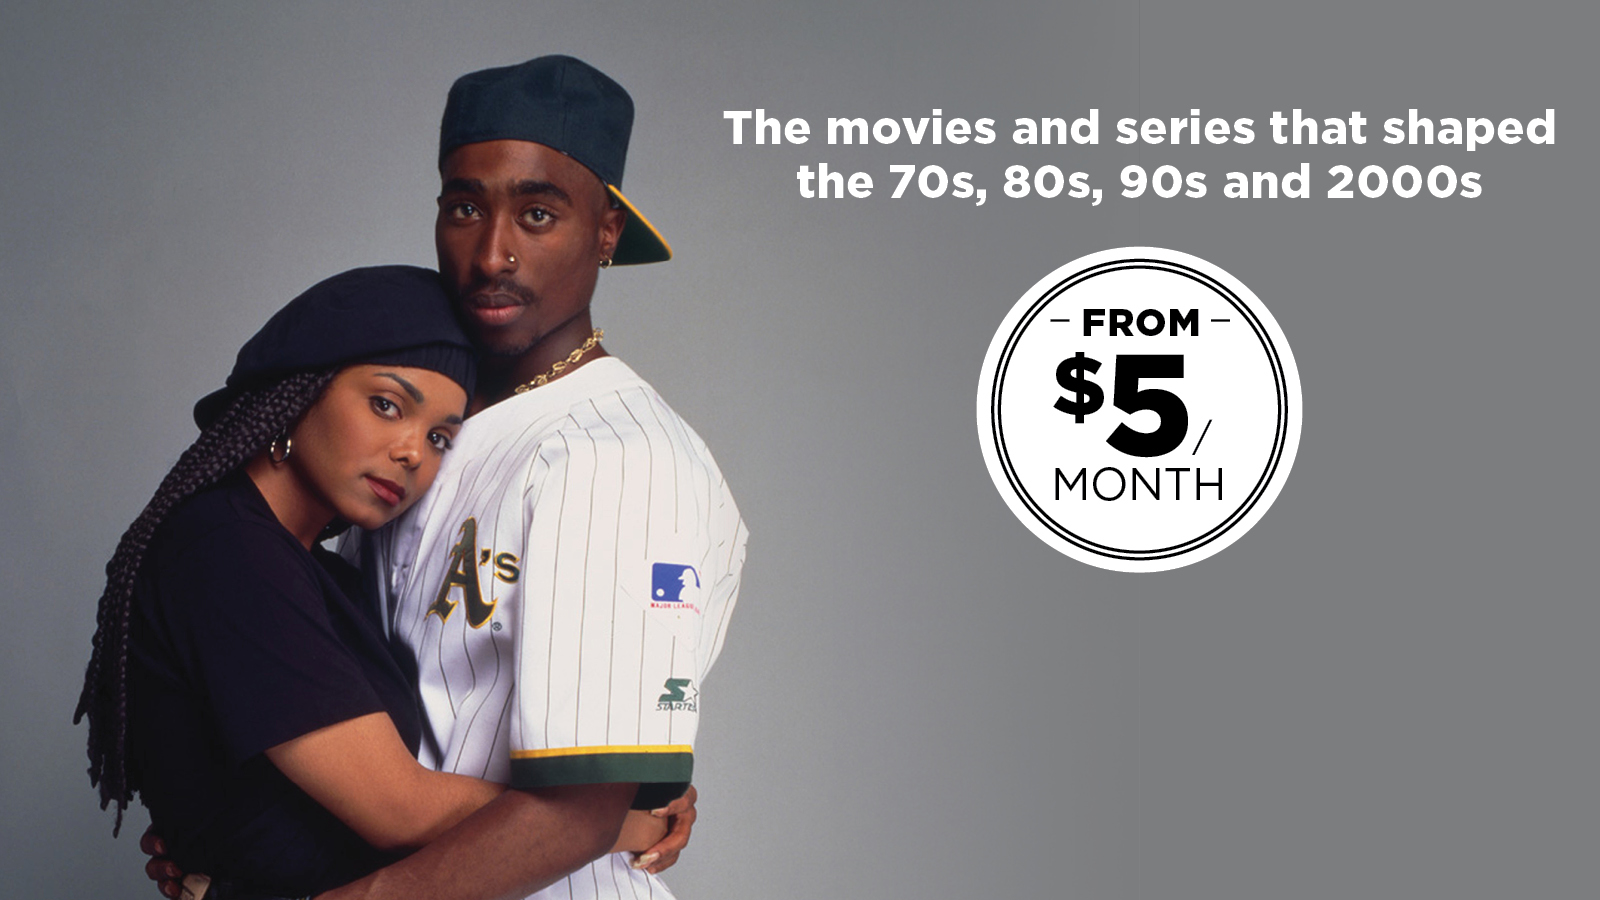 The movies and series you love from the 70s, 80s, 90s and 2000s. From $5 month